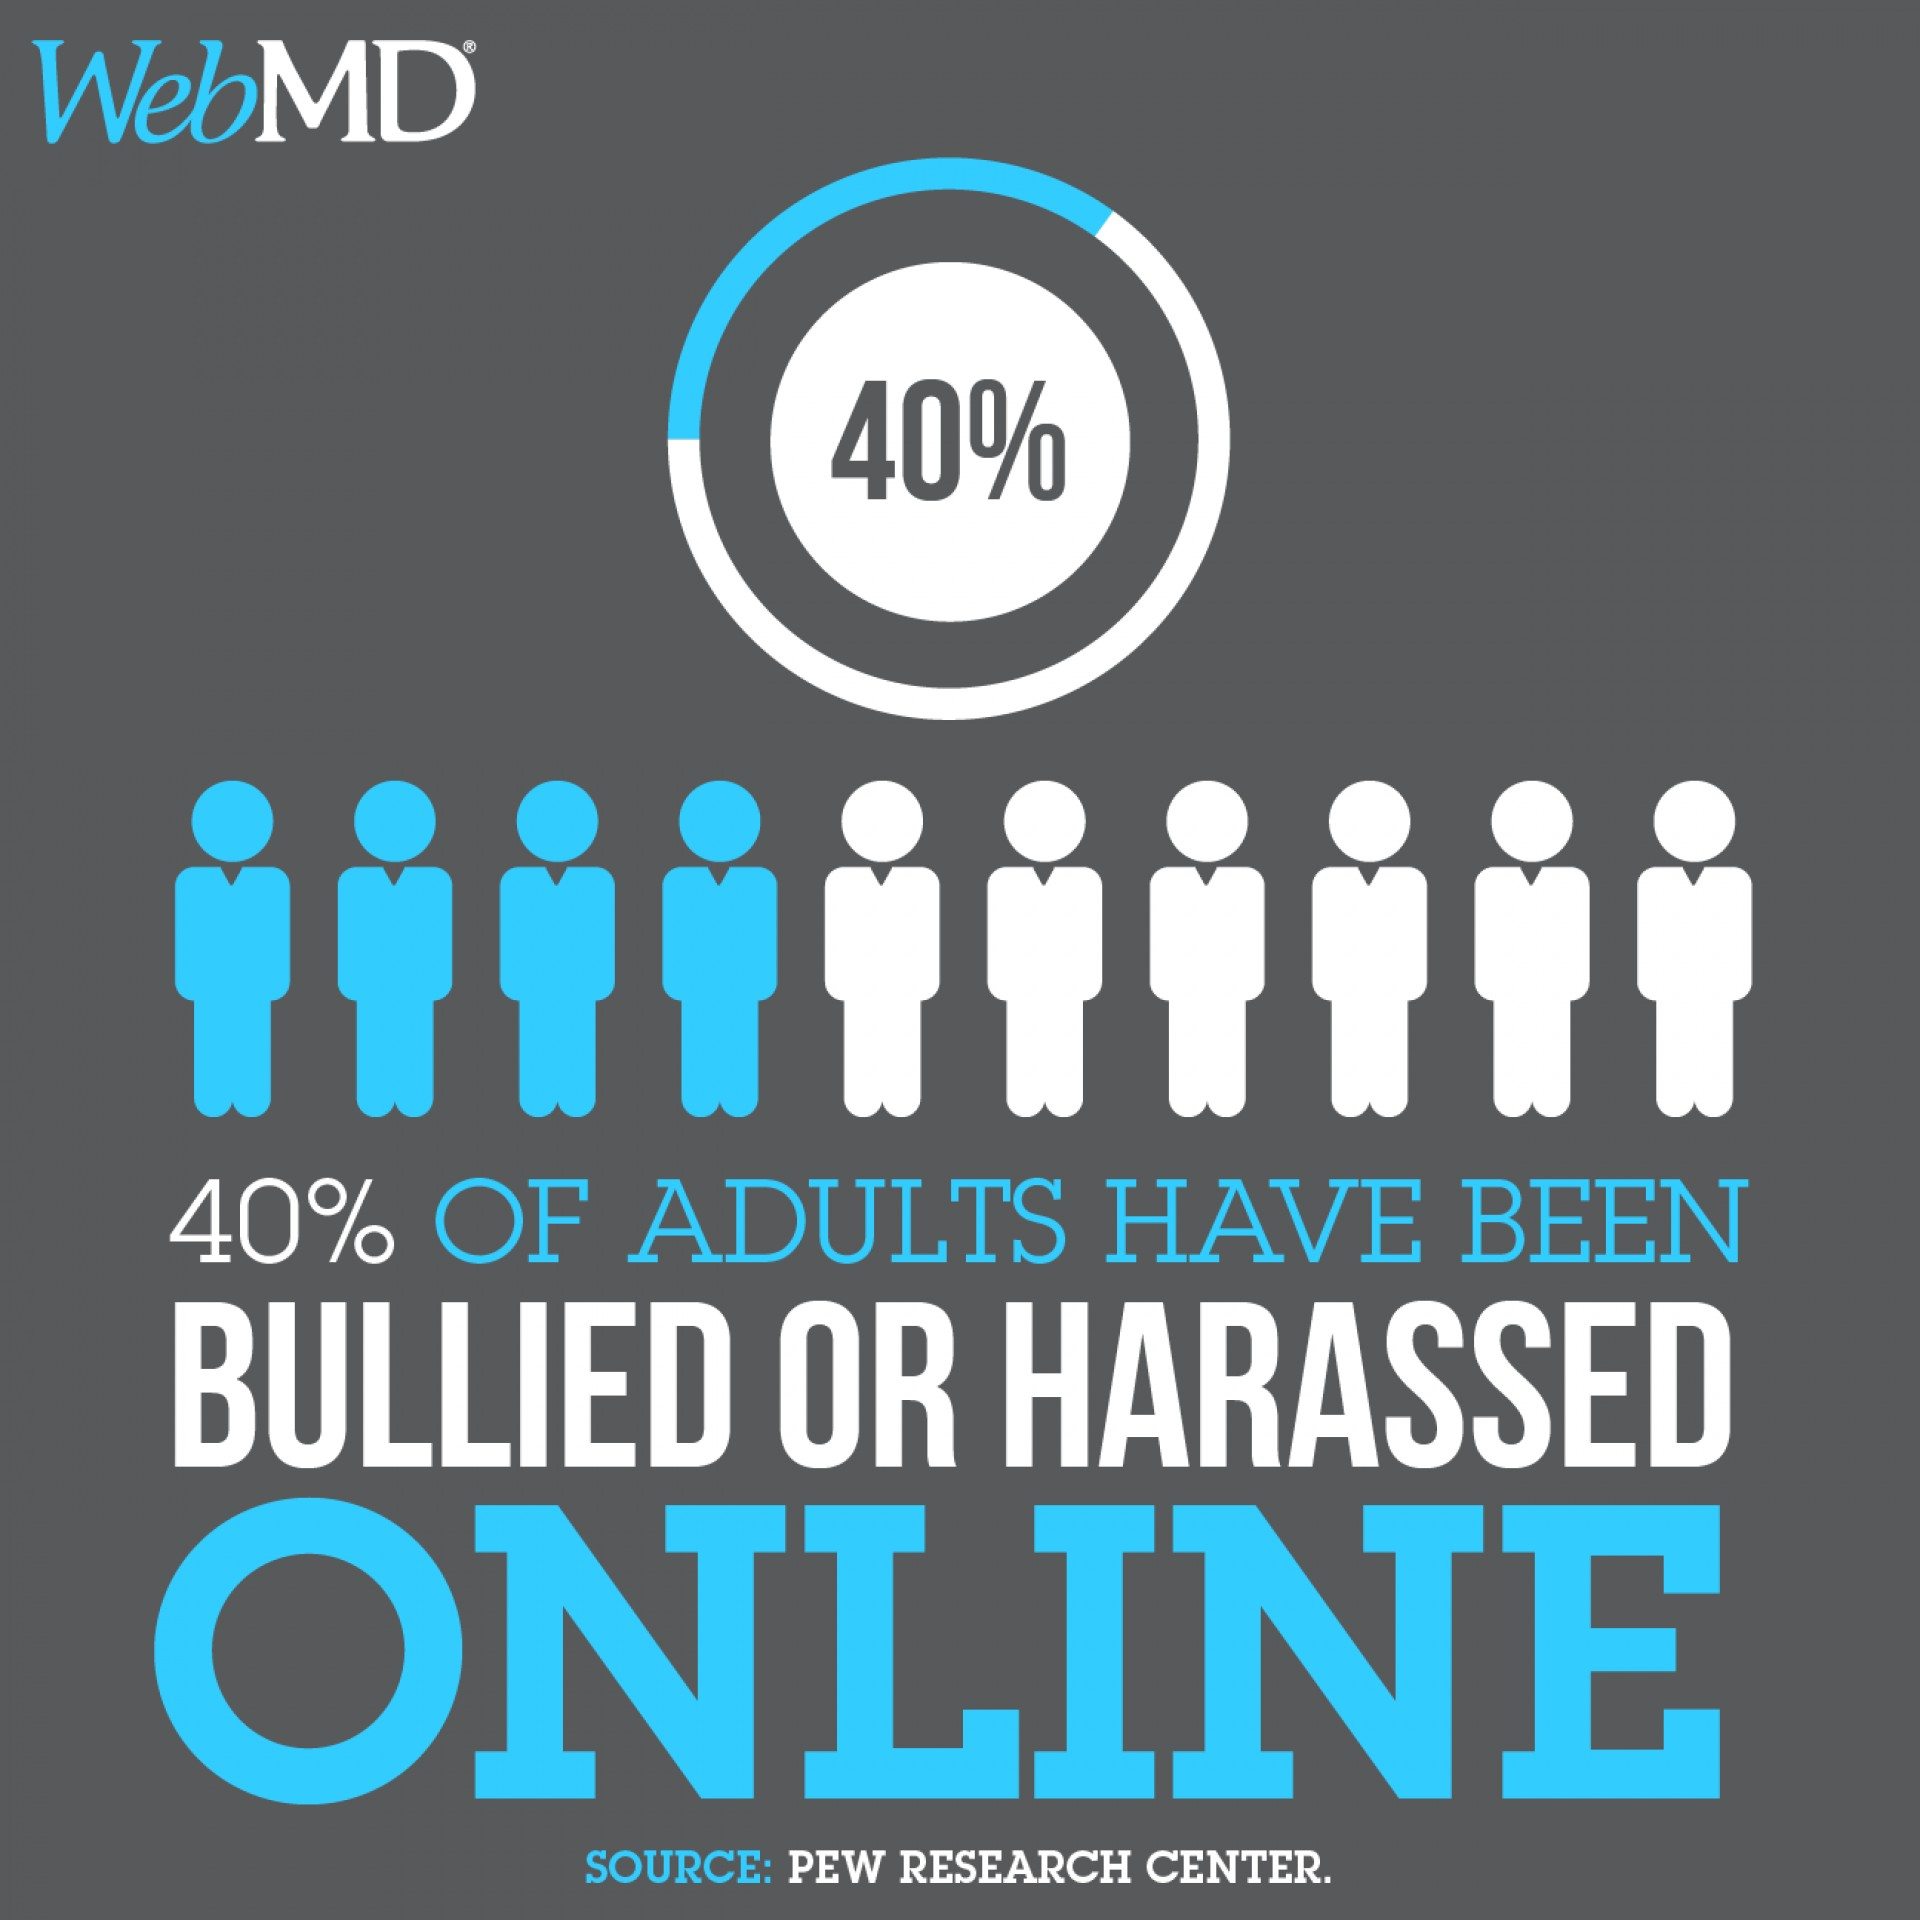 012 Research Paper Short Form Infographic Cyberbullying Excellent Center Statistics 2015 Location 1920